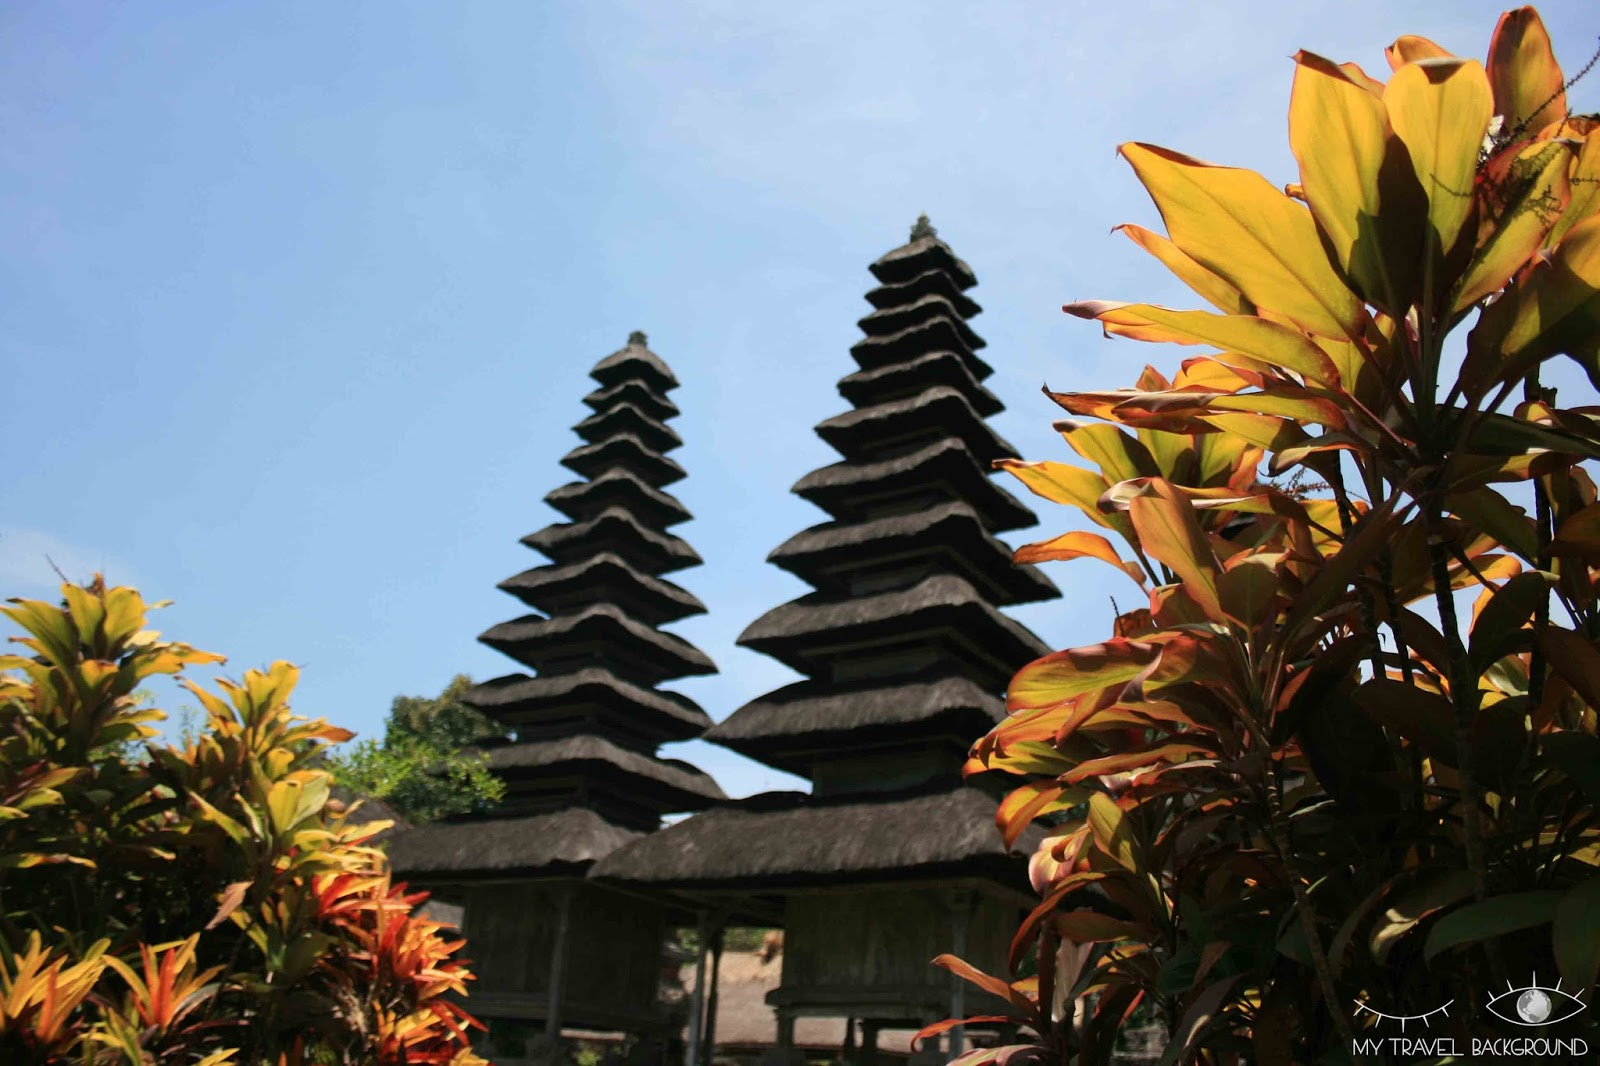 My Travel Background : 10 choses à faire à Bali - Découvrir une nouvelle culture